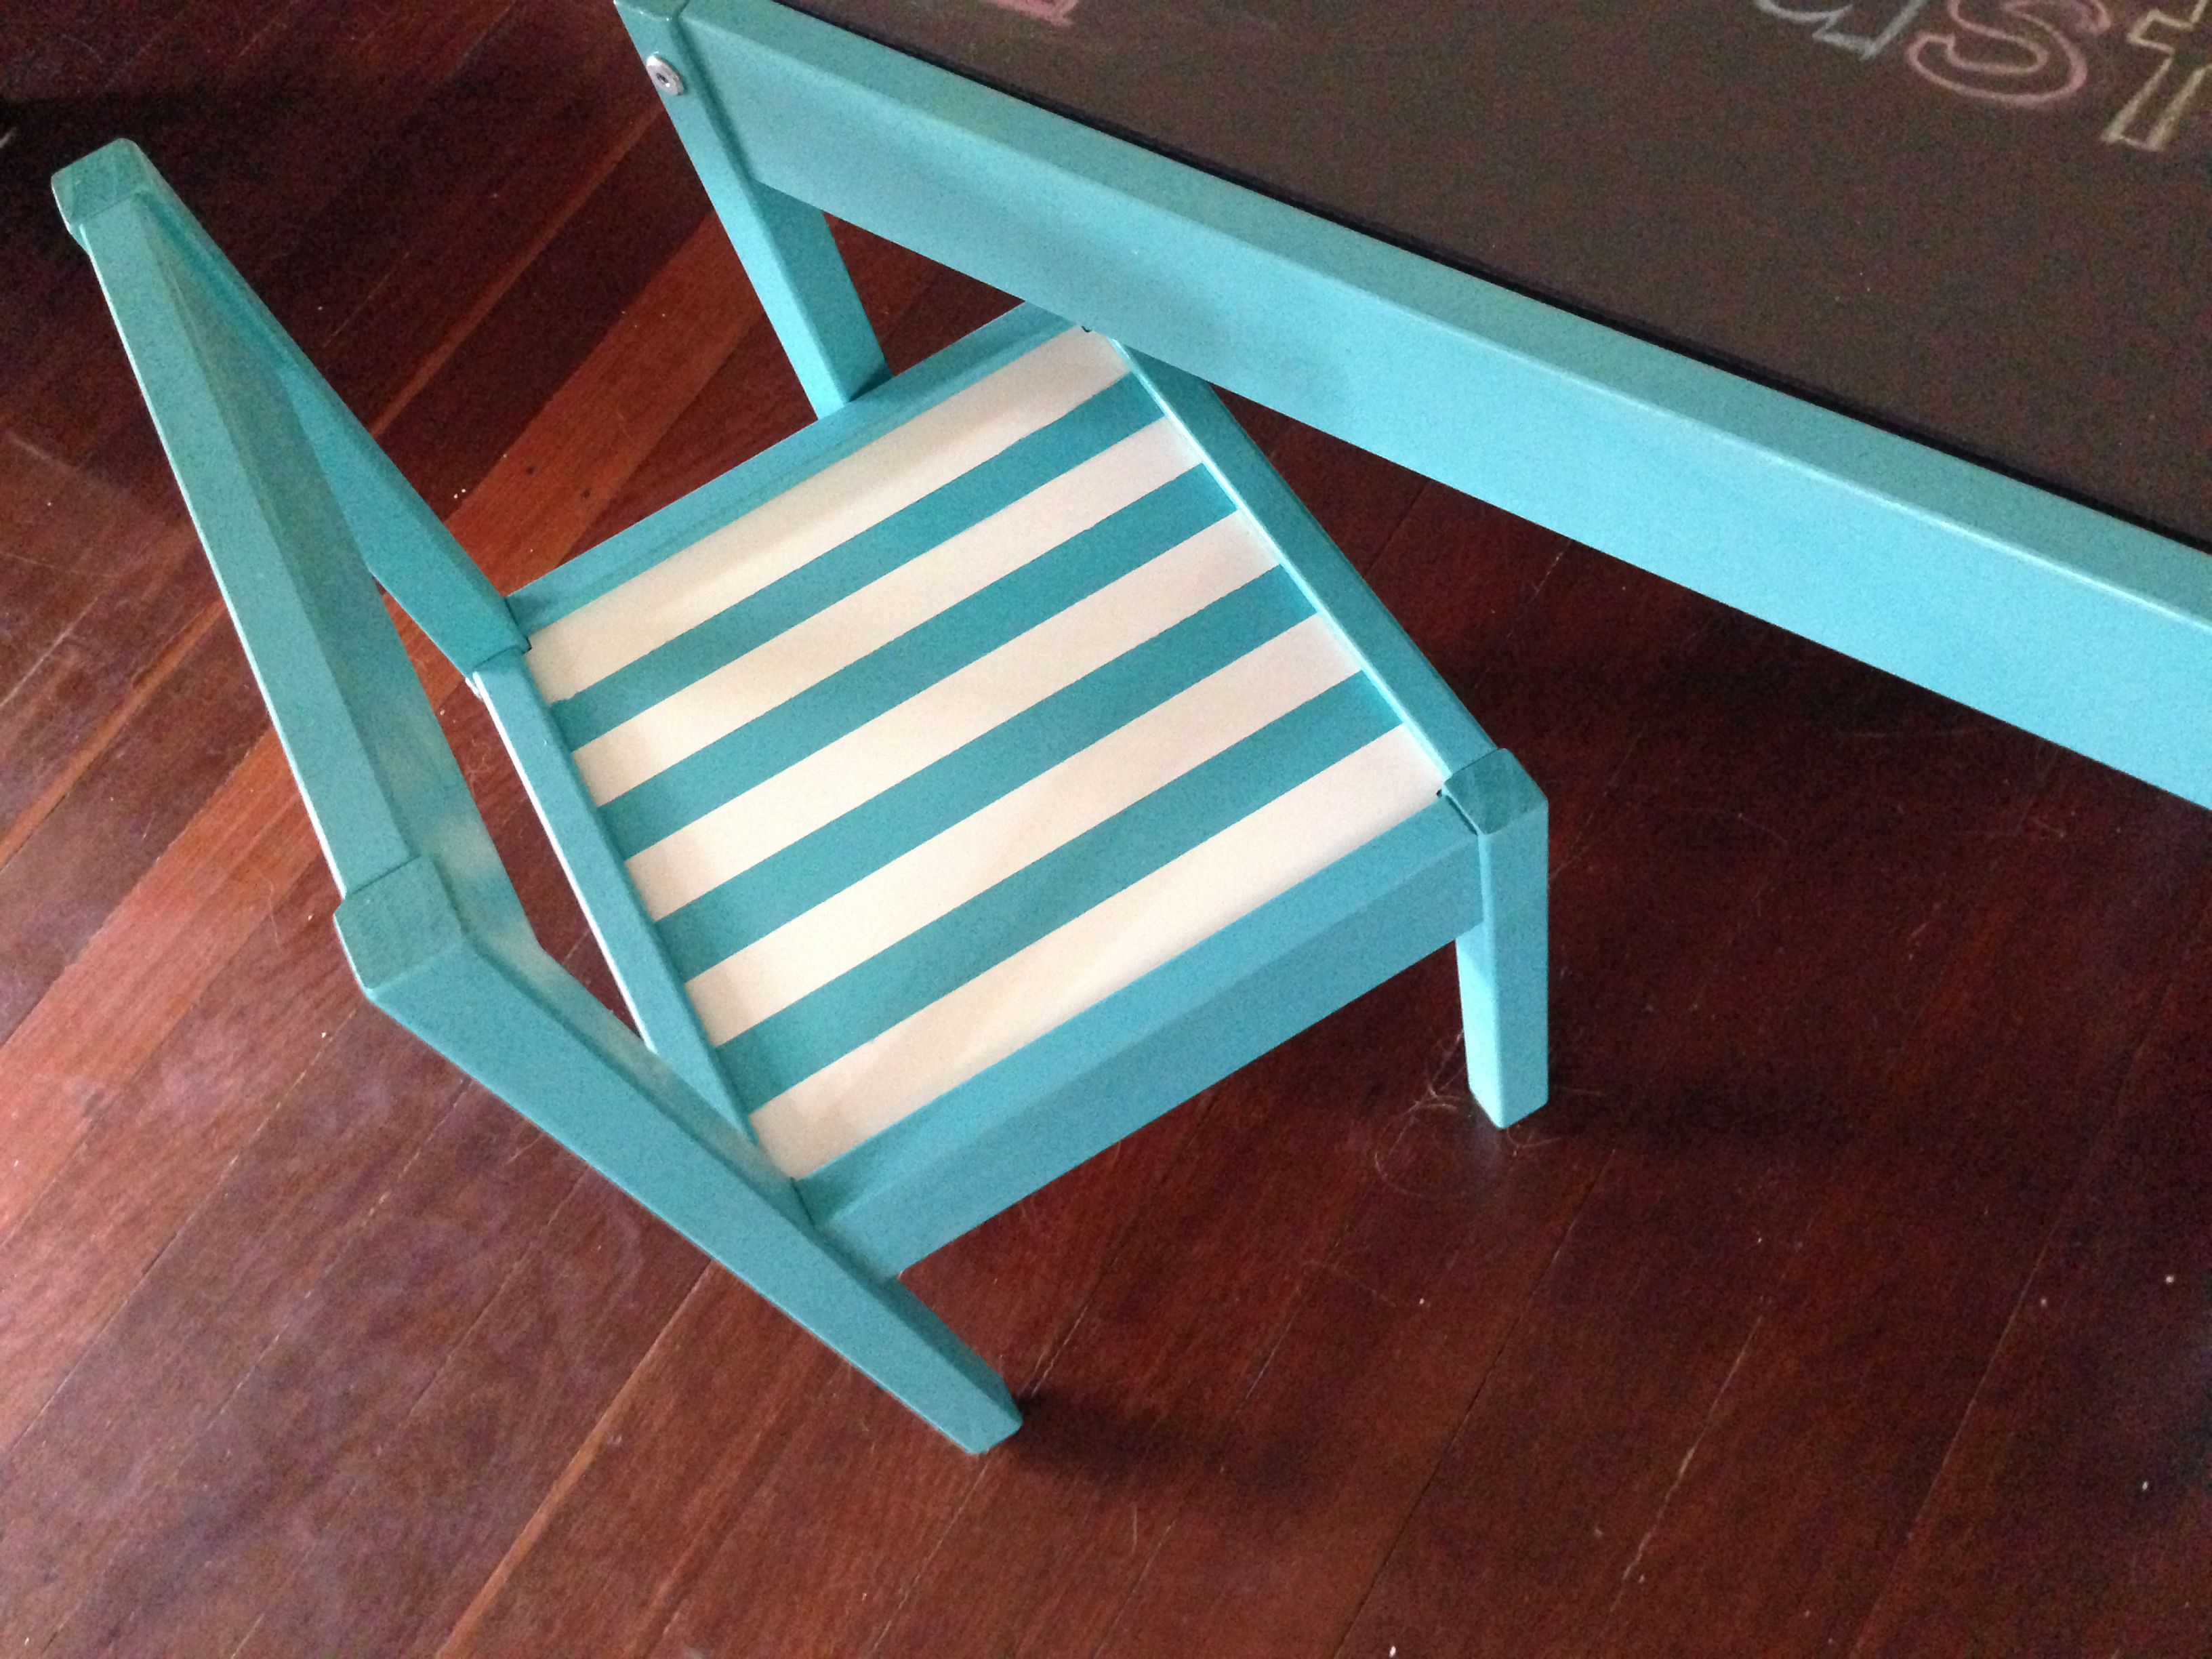 Ikea Latt Kids table hack Close up of chair Stripes on chair done